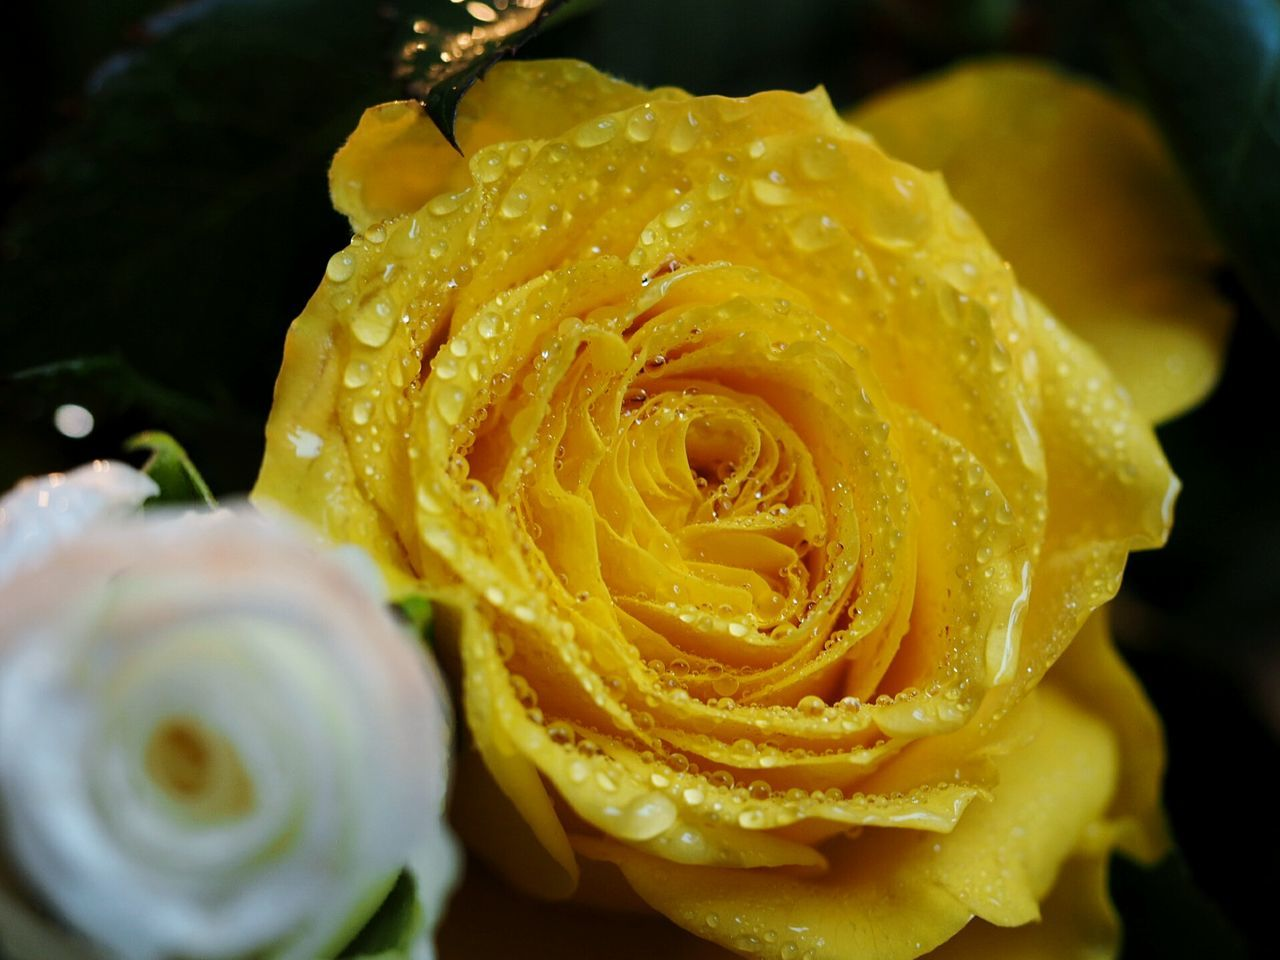 Close-up Flower Nature Water Beauty In Nature Yellow Fragility Freshness Flower Head Beautiful Nature Macro Photography Roses Waterdrops Macro Rose Beauty Blossom Dew Drop Beauty In Nature Nature Freshness Rose - Flower Petal Yellow Rose Yellow Flower